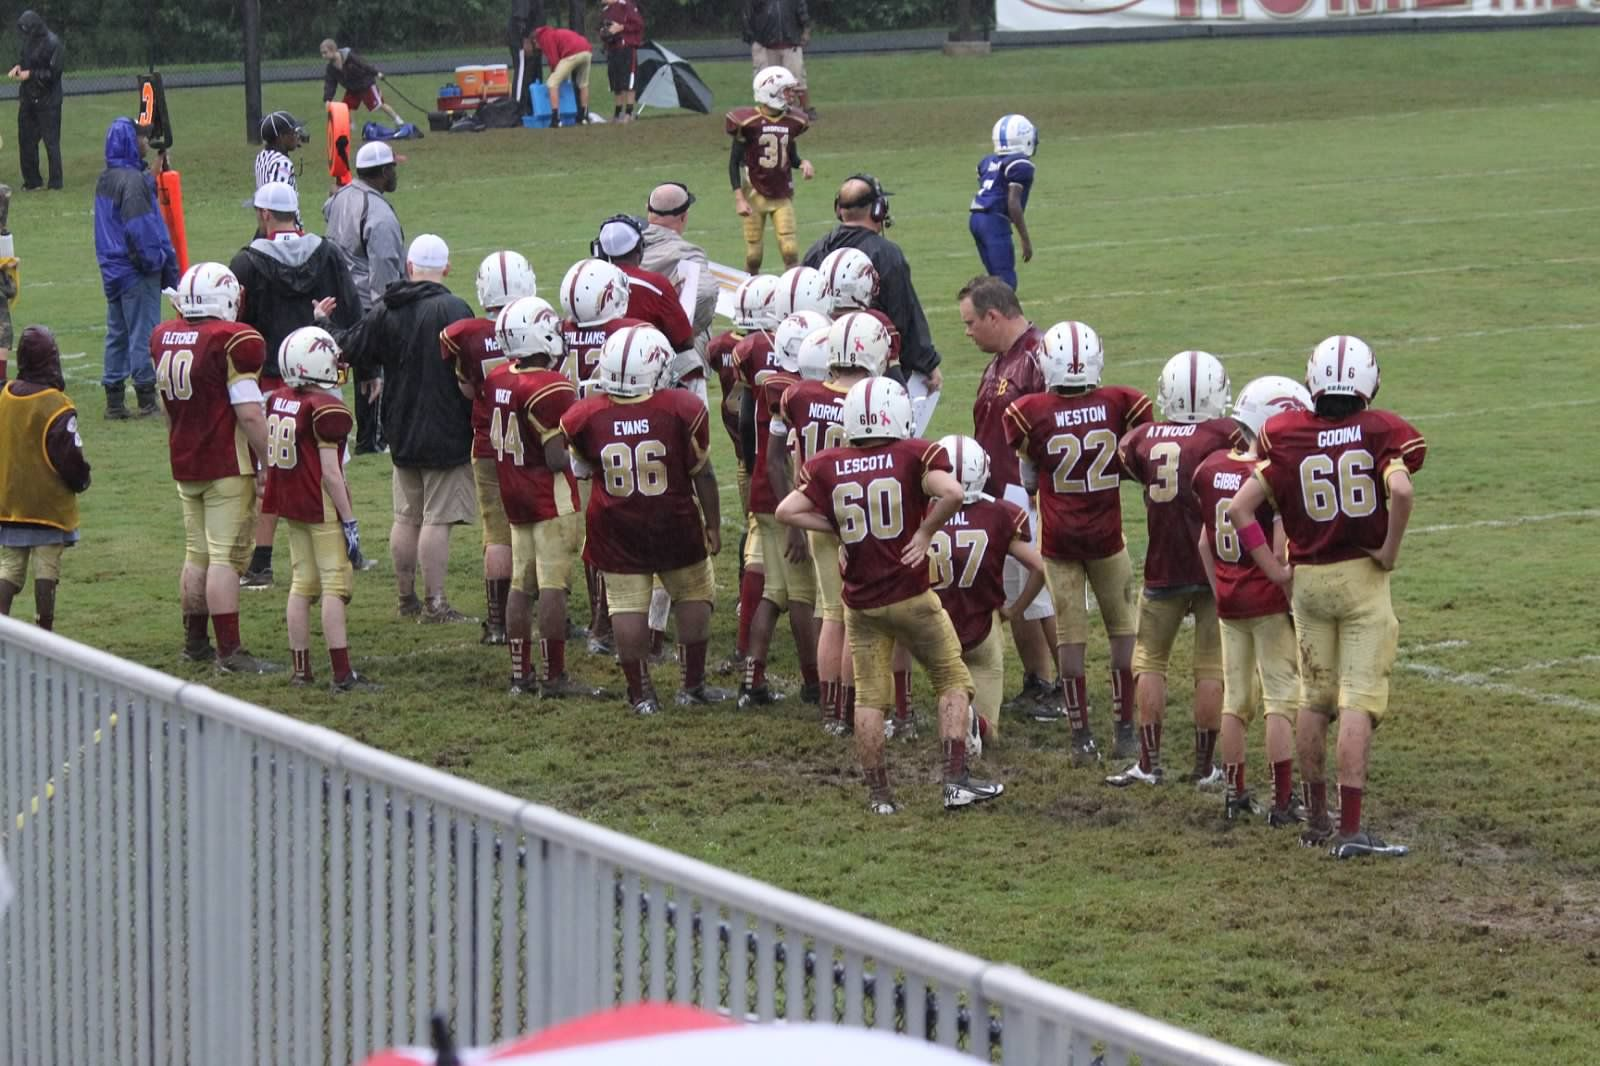 Muddy Broncos What A Mess Youth Sports Jordan Parks Sports